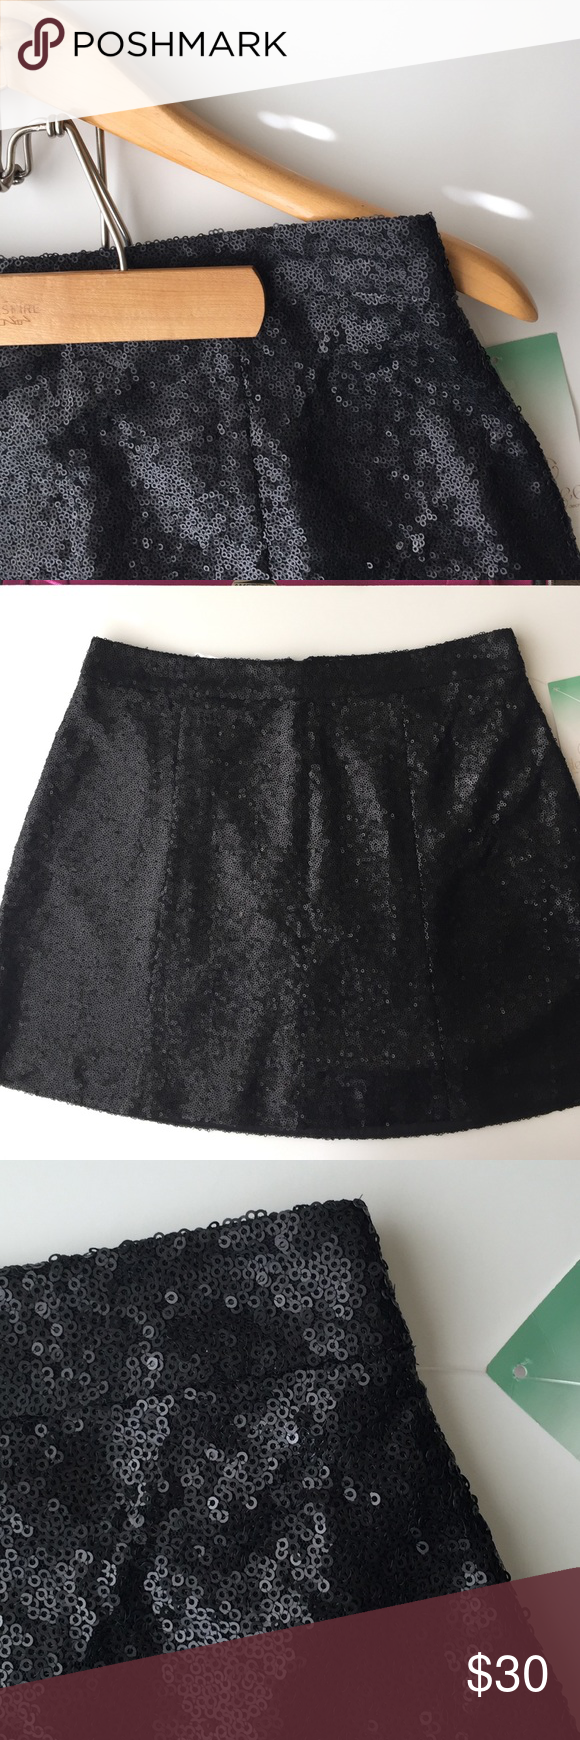 "Black Sequin Skater Skirt NWT M Black sequined skater skirts by Decree. Fully lined with back zip. M - 14"" waist; 16"" length. XL - 17"" waist; 17"" length. NWT Decree Skirts Mini"